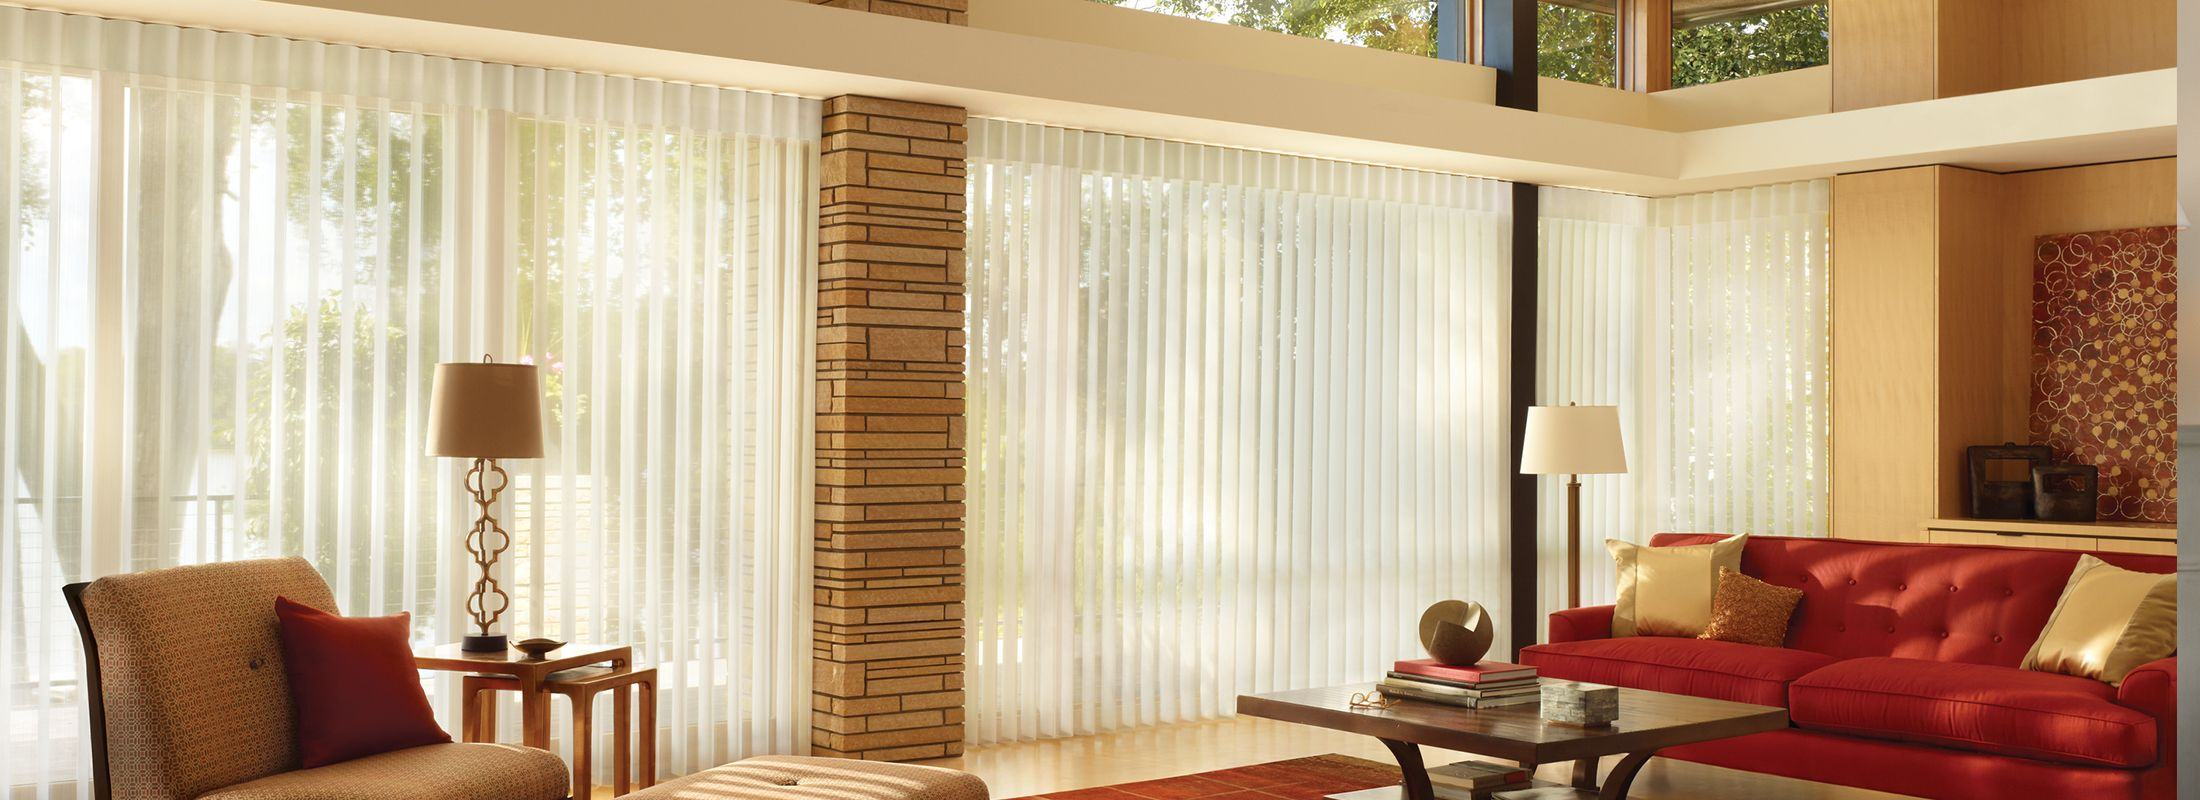 Privacy Blinds In Stria Harmony Luminette